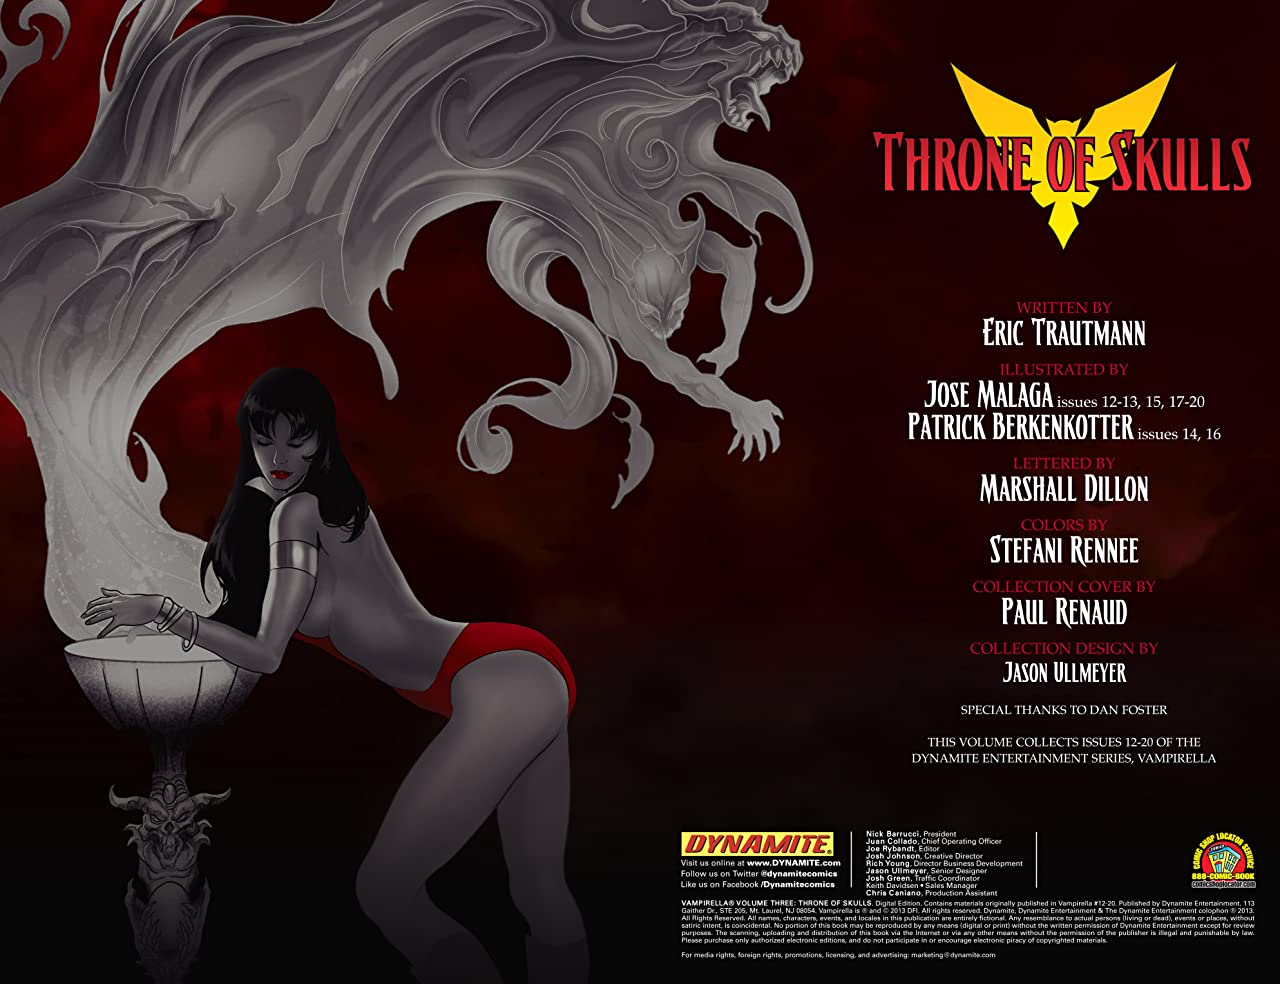 Vampirella Vol. 3: Throne of Skulls